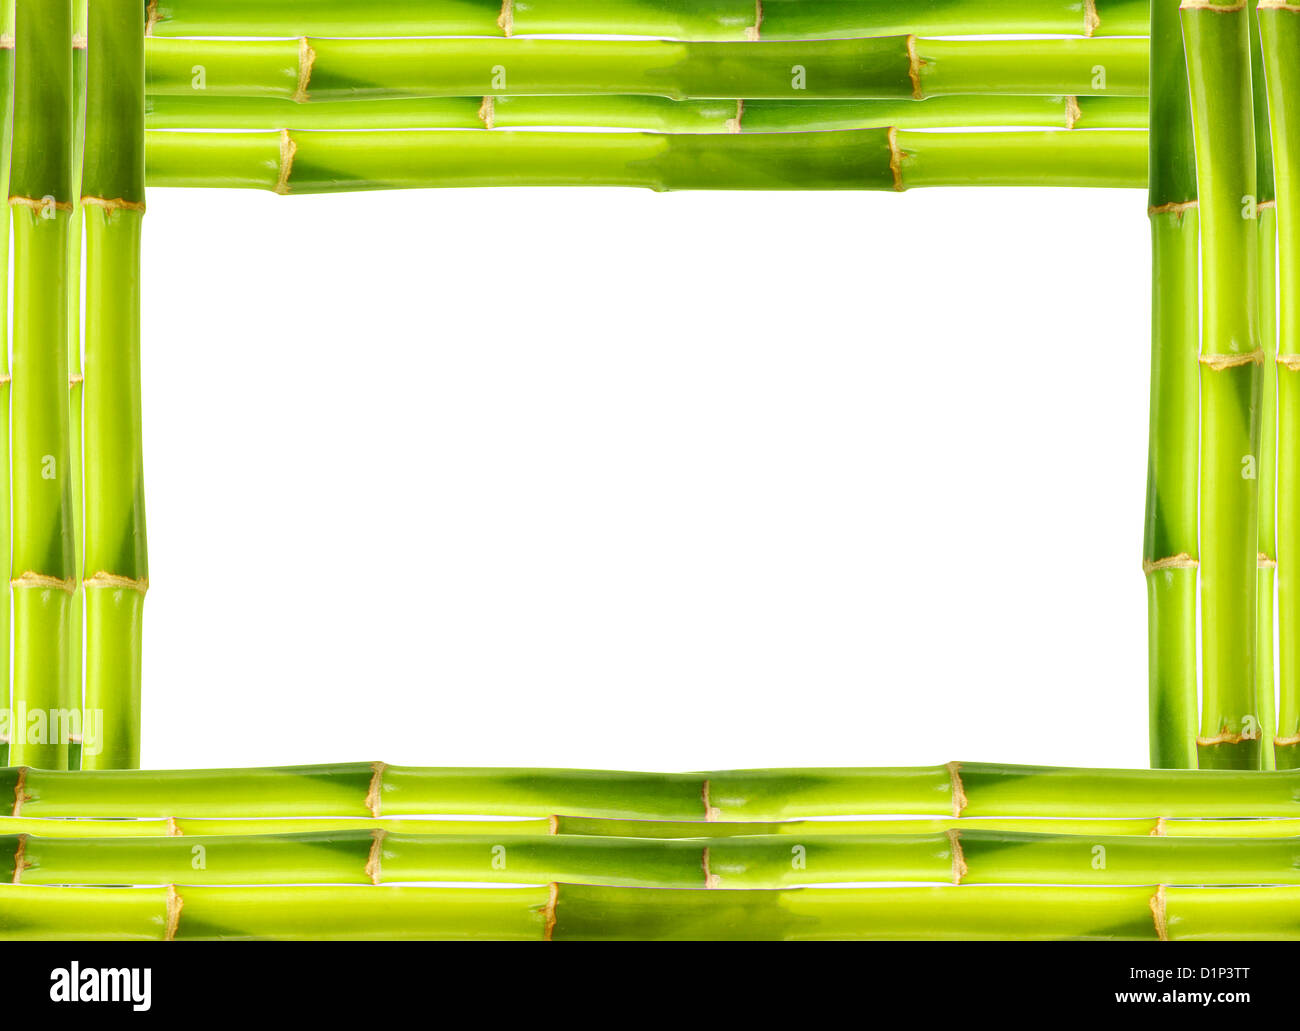 Bamboo frame made of stems - Stock Image